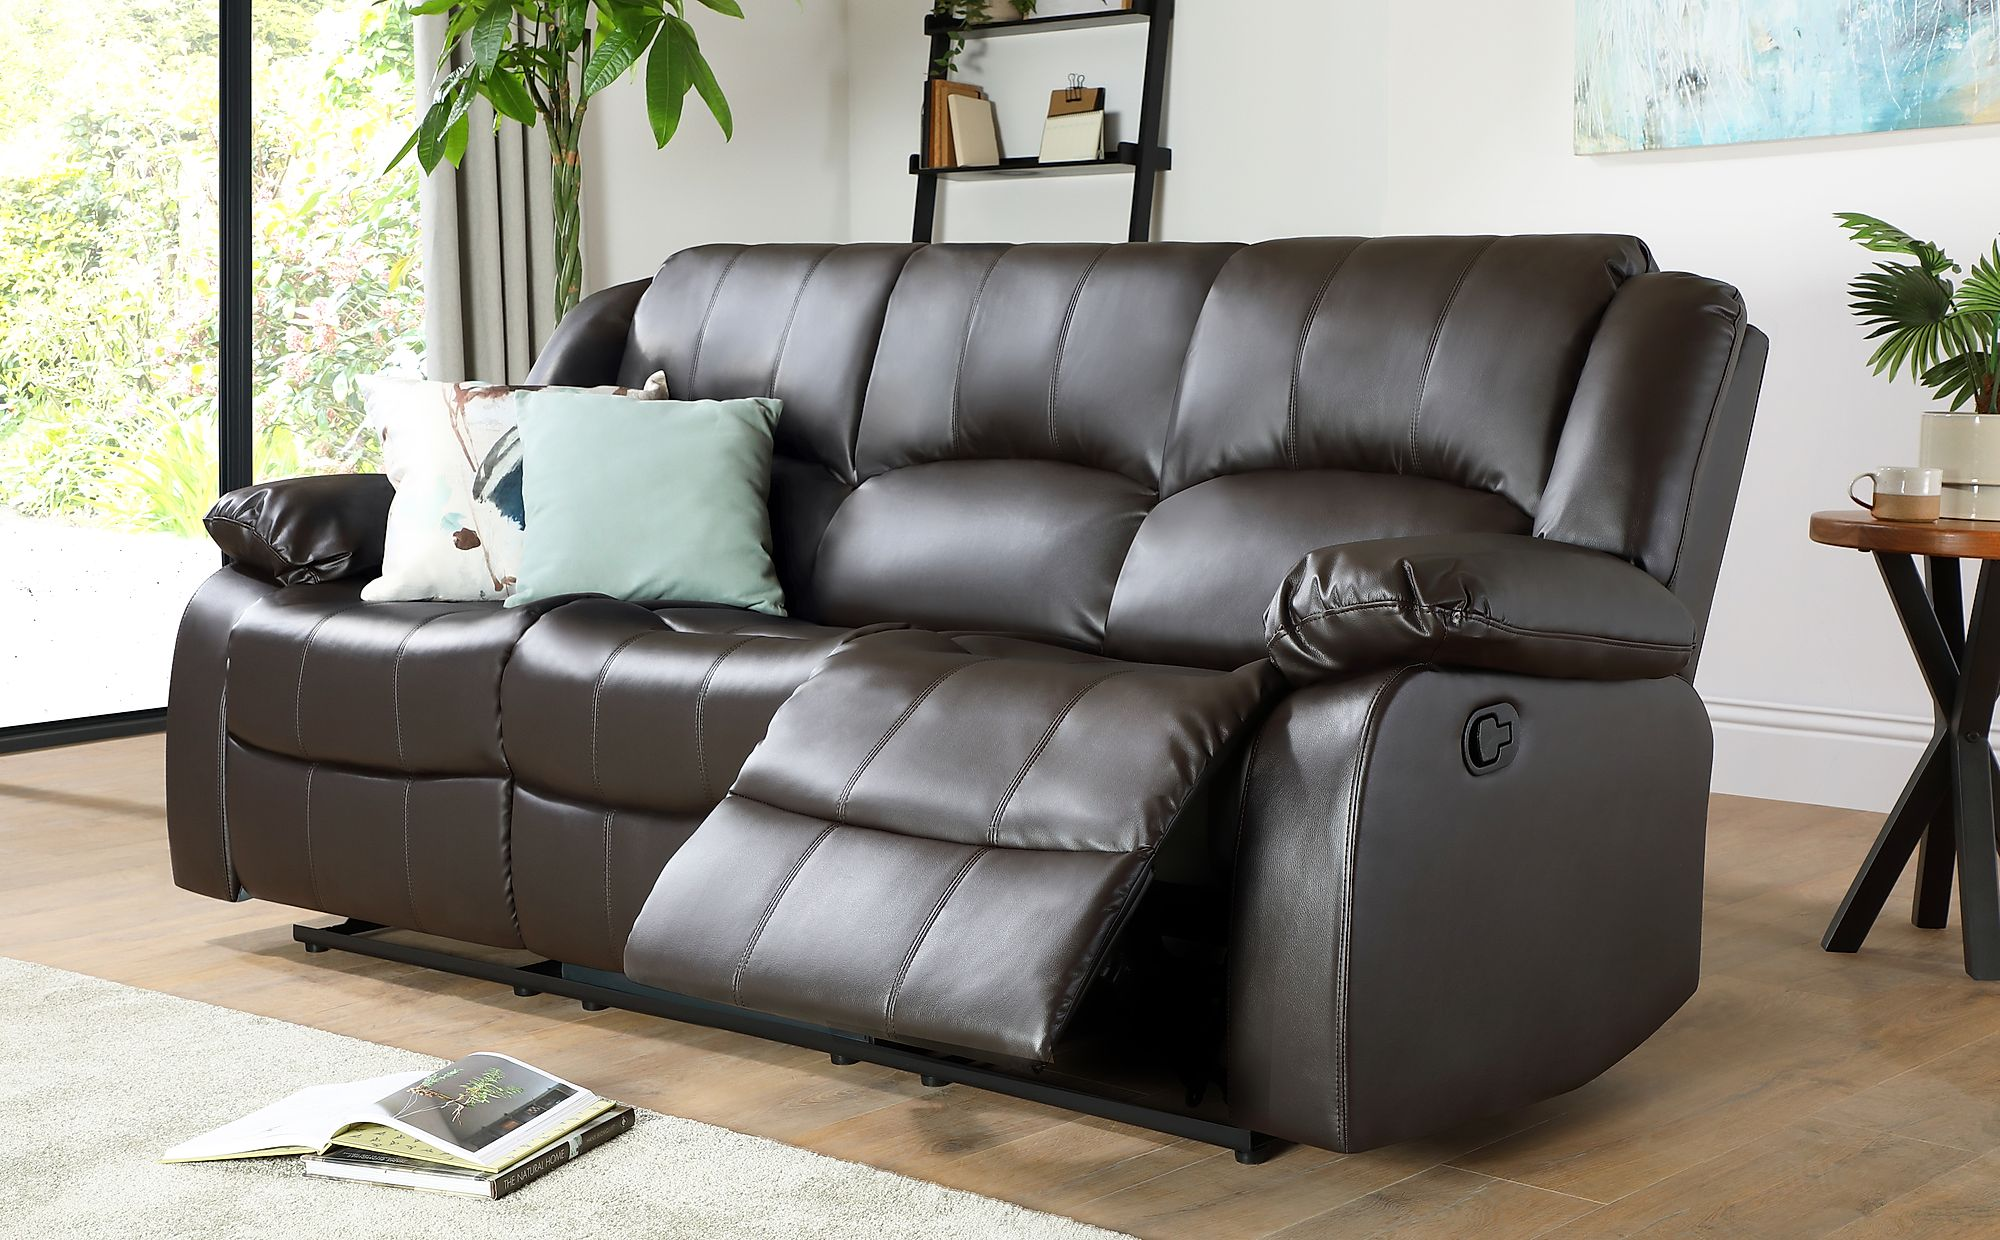 dakota 3 seater leather recliner sofa brown only 569 99 rh furniturechoice co uk brown leather reclining sofa set brown leather reclining sofa and loveseat